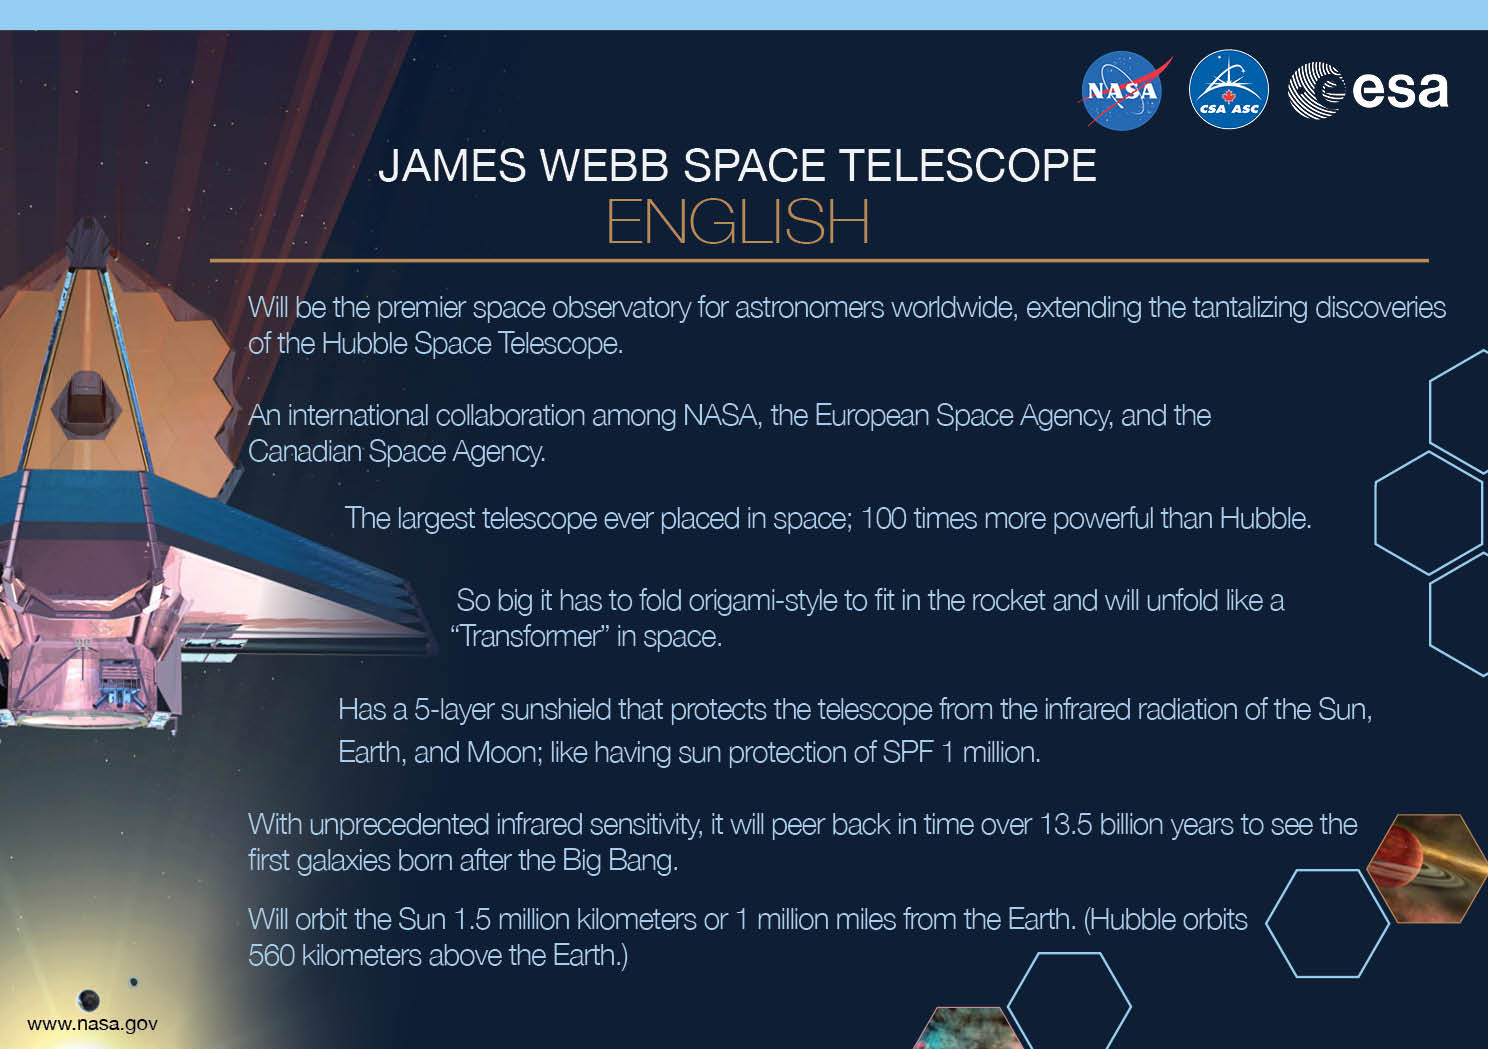 jwst key facts